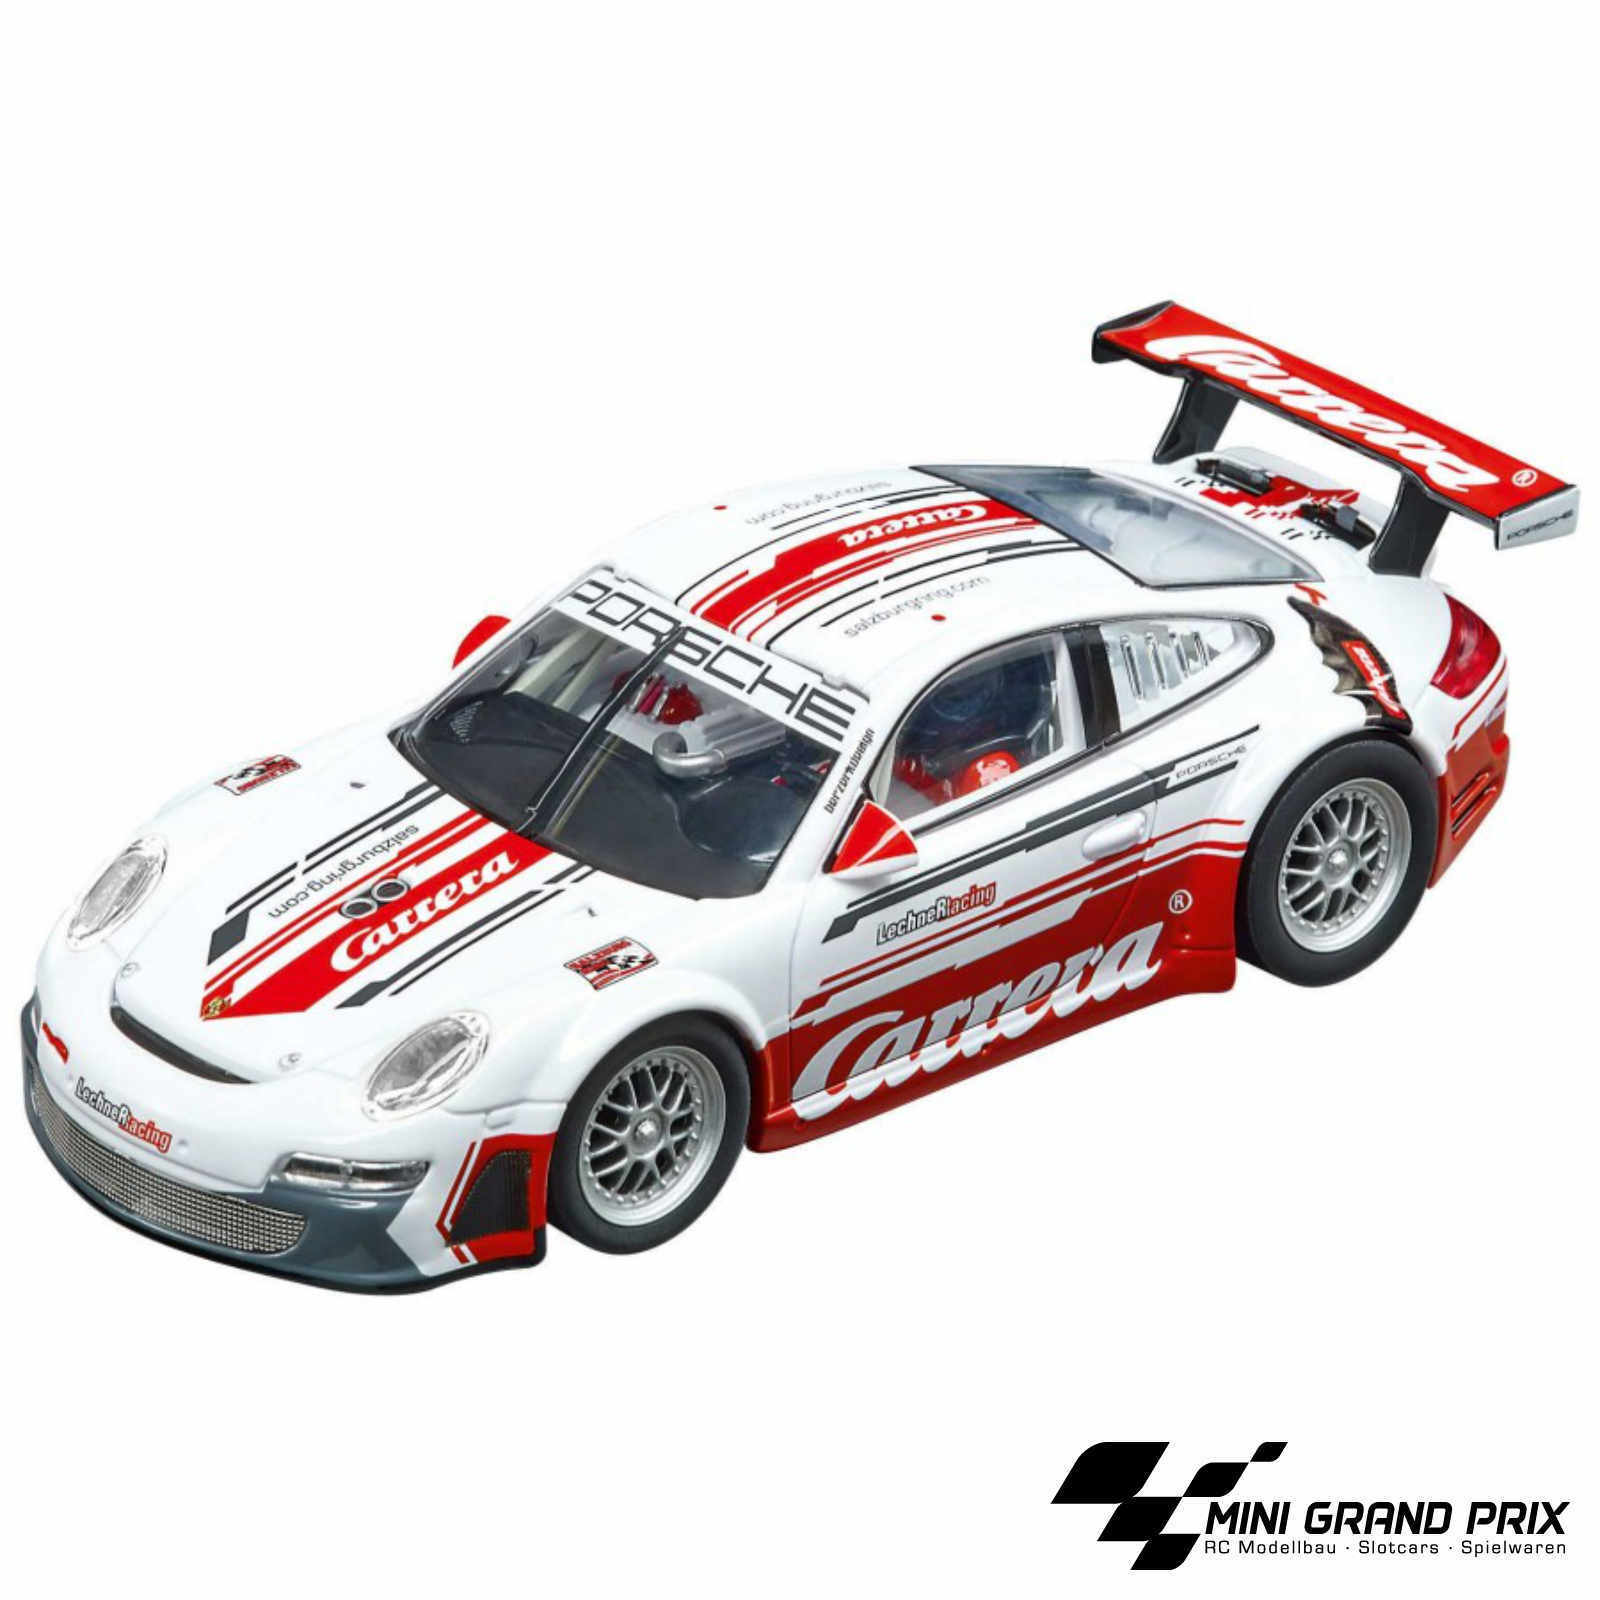 Carrera Evolution Porsche 911 GT3 RSR Lechner Racing   CARRERA RACE TAXI   27566